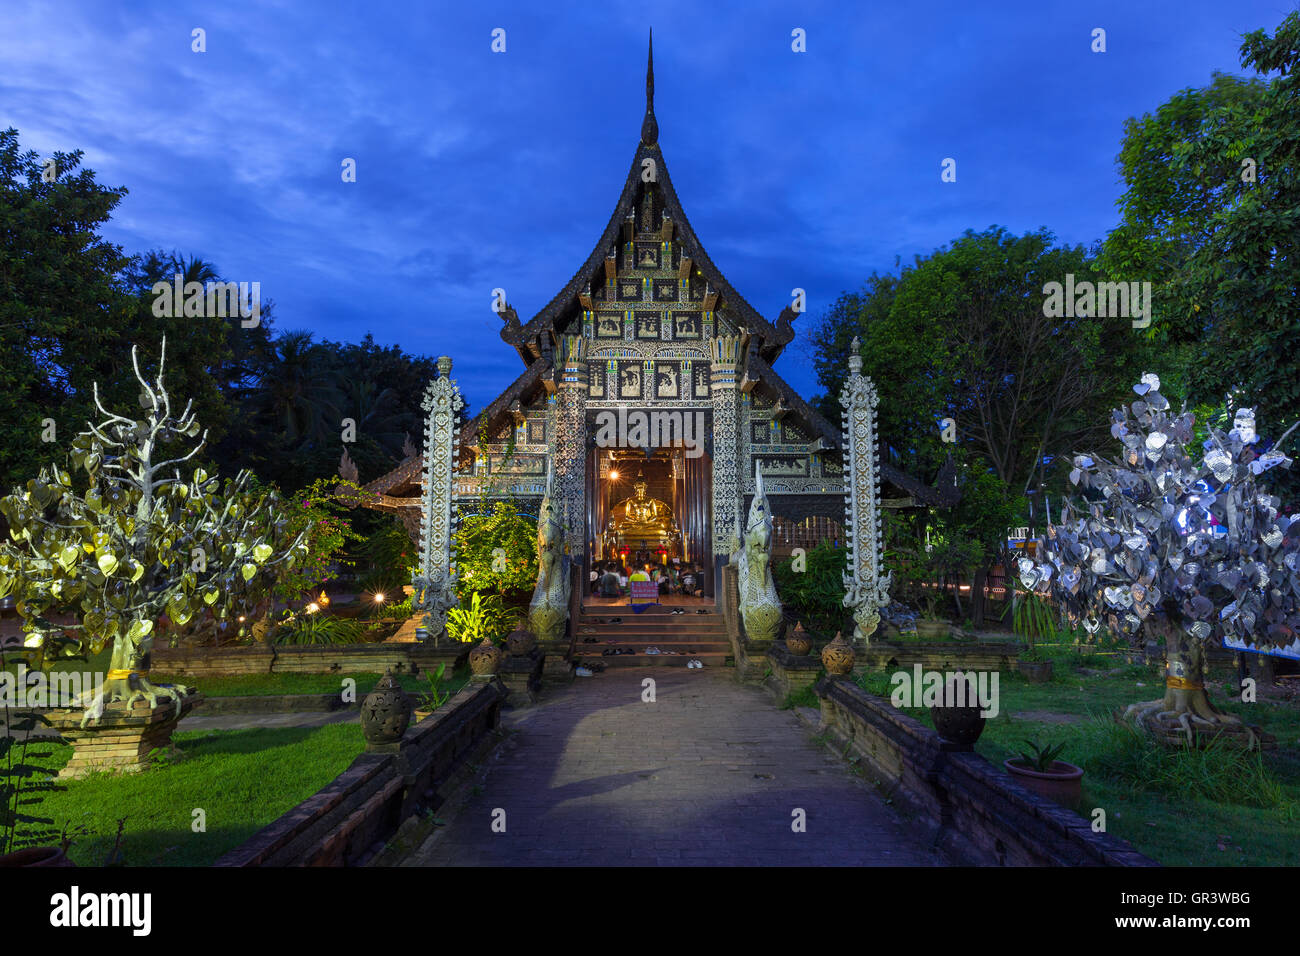 Wat Lok Molee at dusk, one of the oldest temples in Chiang Mai, Thailand - Stock Image